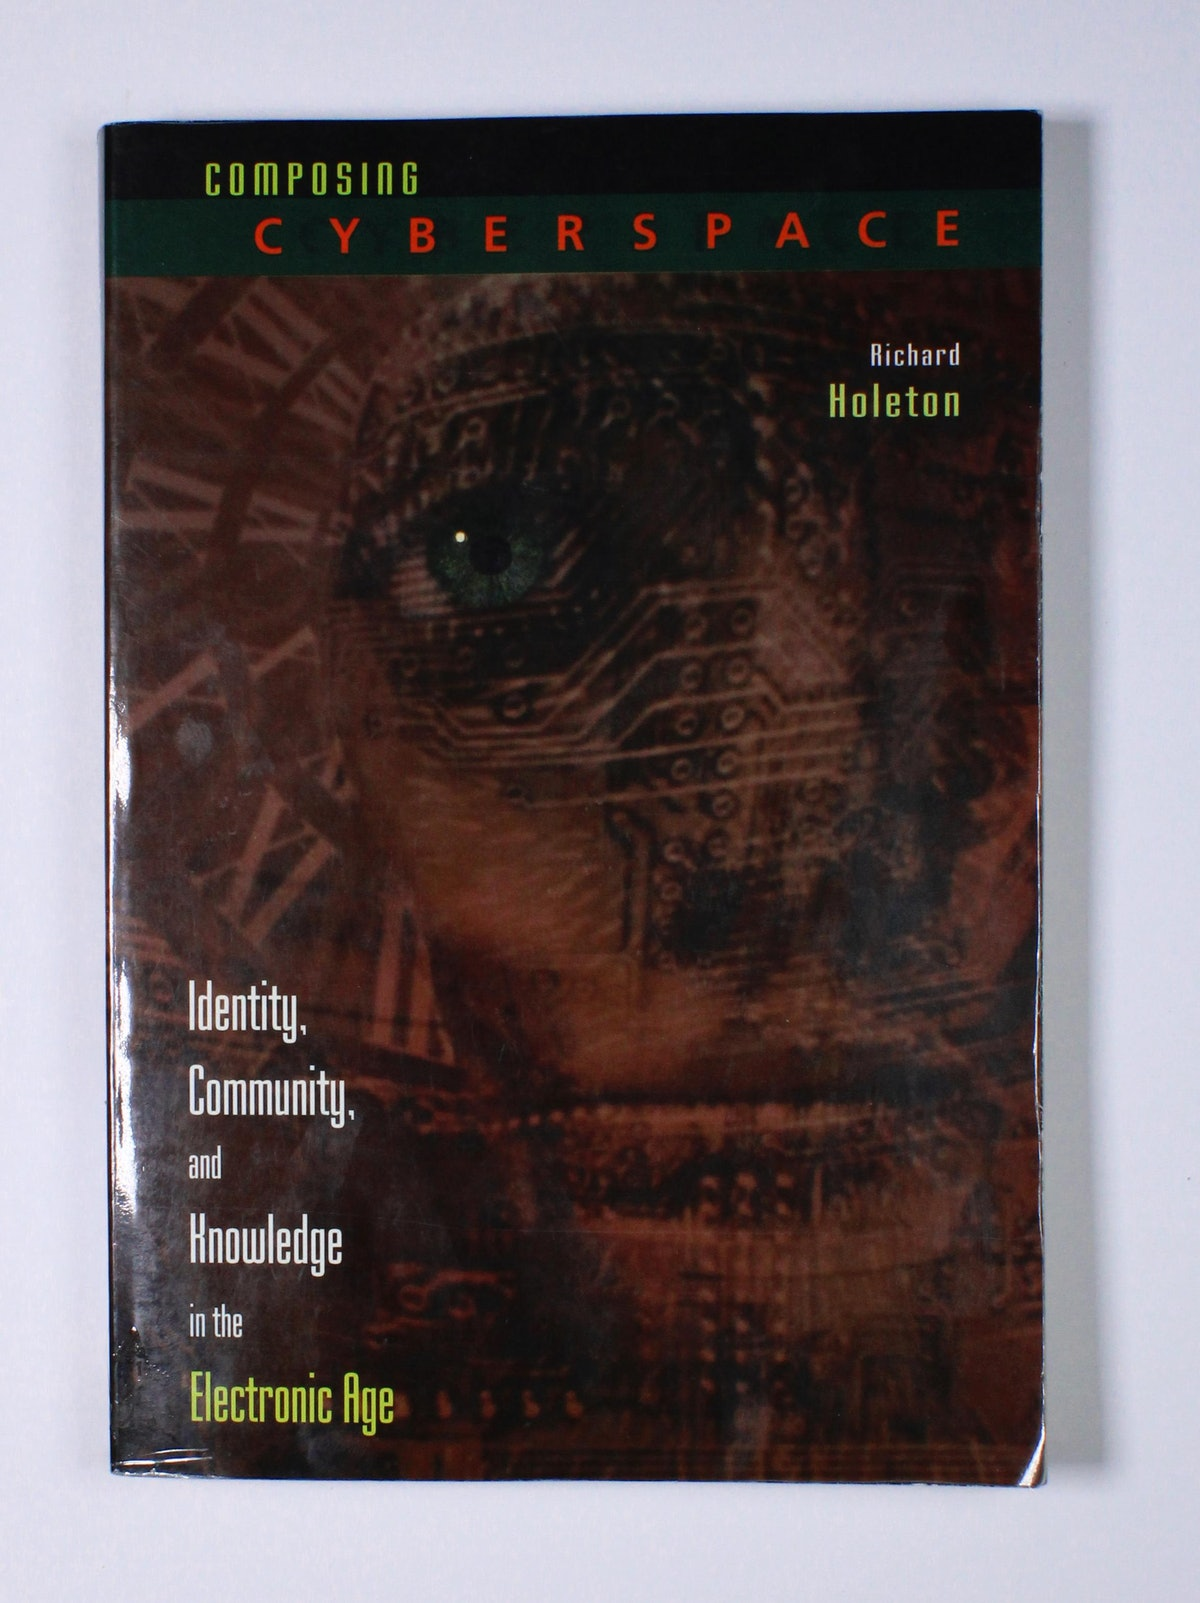 Composing Cyberspace: Identity, Community, and Knowledge in the Electronic Age